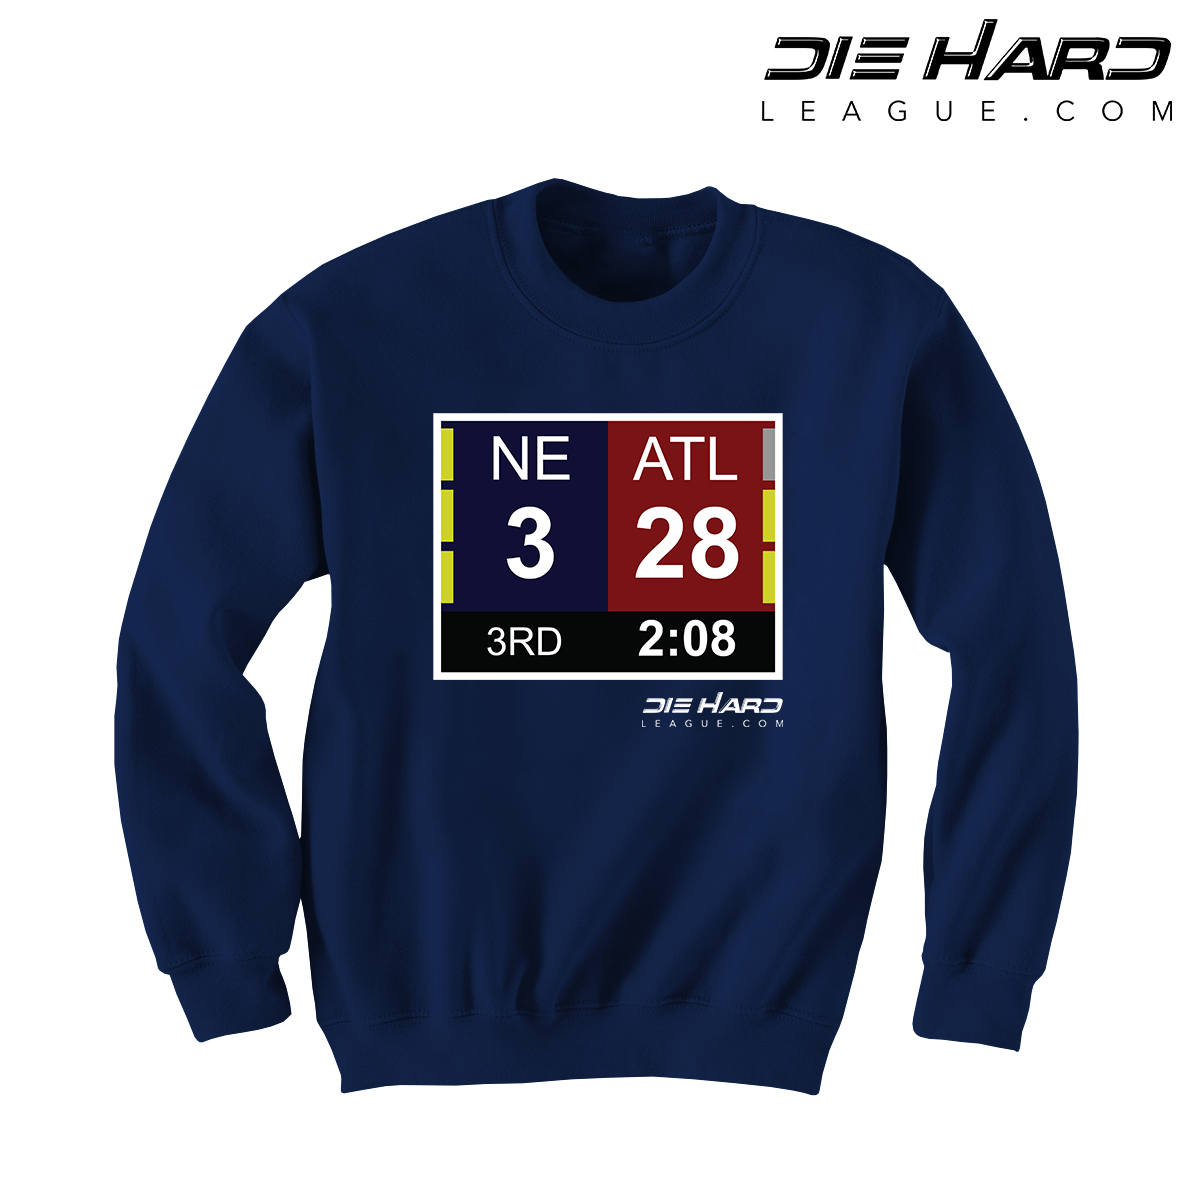 62005a3b1 Shop. Home Nfl Shop Patriots Patriots Sweatshirts New England Patriot  Sweatshirts – Patriots Superbowl Navy Sweatshirt